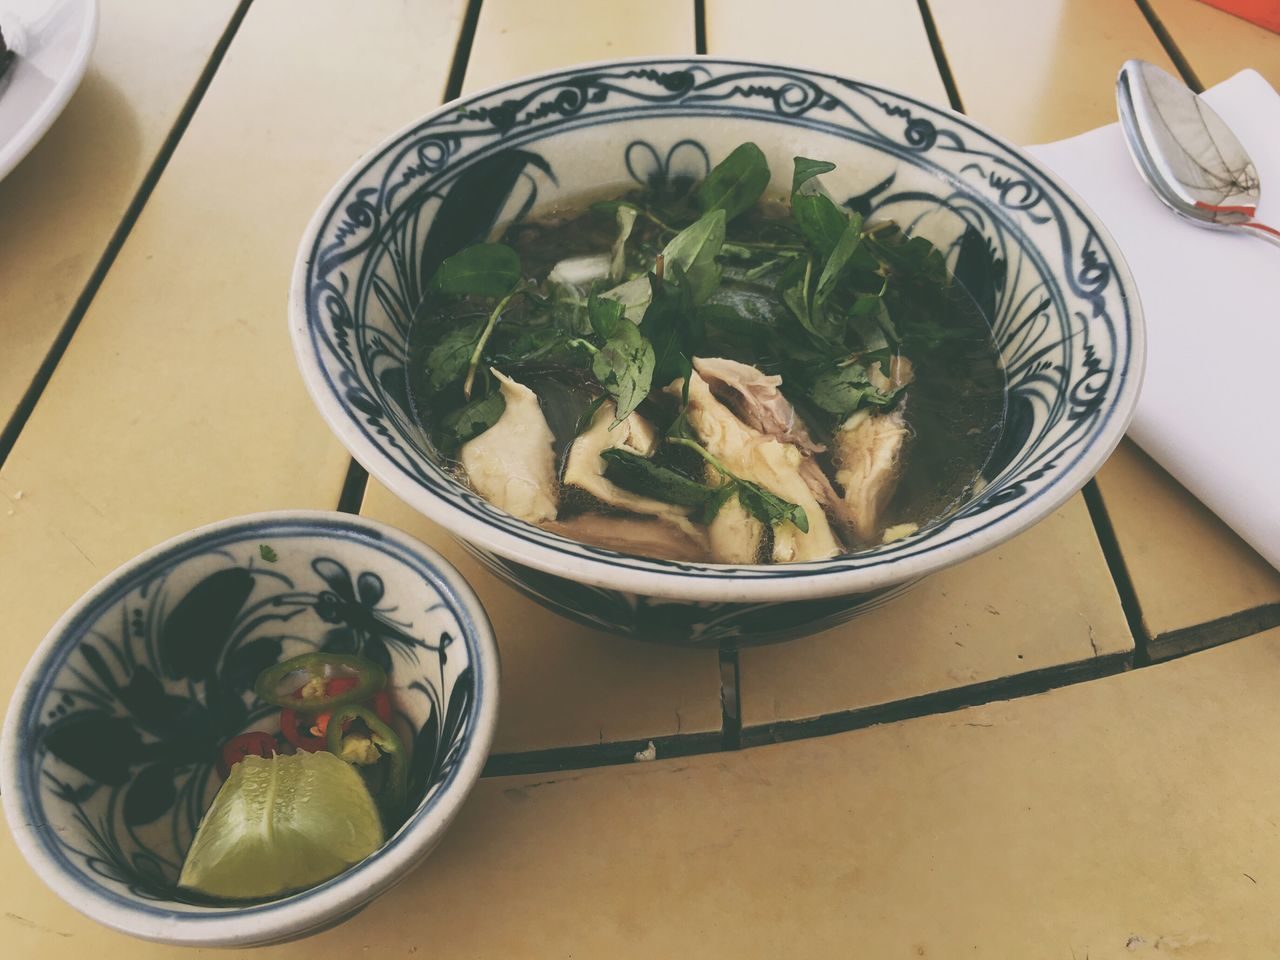 Vietnam Vietnamese Vietnamese Food Pho Food Foodporn VSCO Vscocam Vscogood Good Morning Breakfast Nom Nom Nom Relaxing Chilling Da Nang Hyatt Regency Hyatt Showcase March